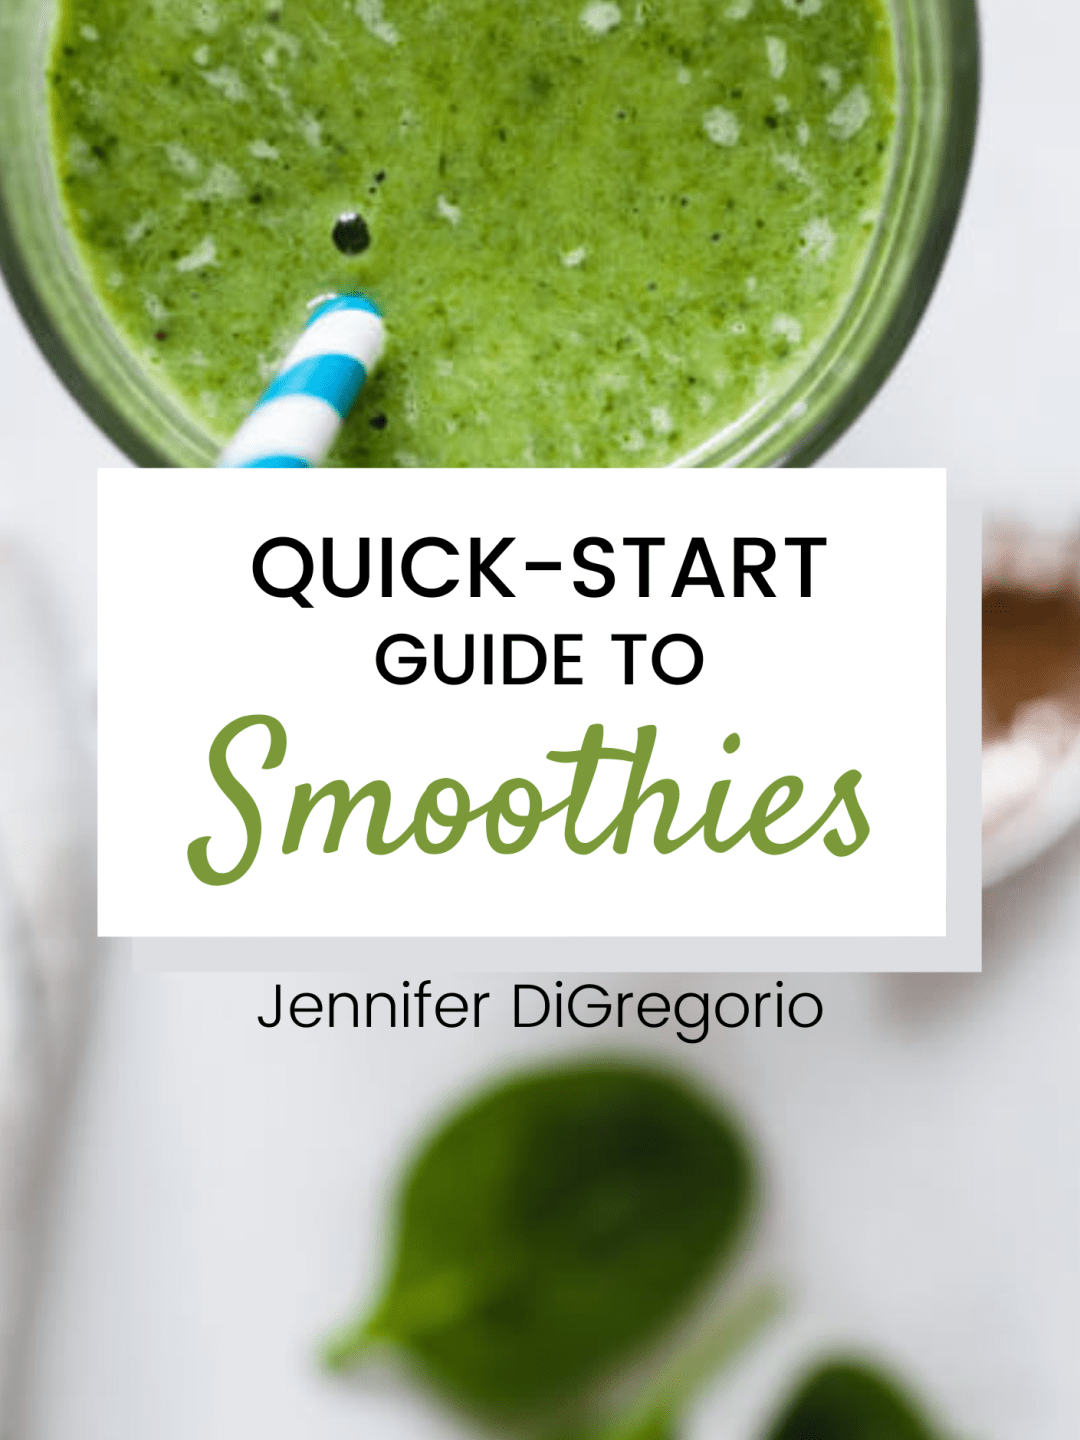 Quick start guide to smoothies